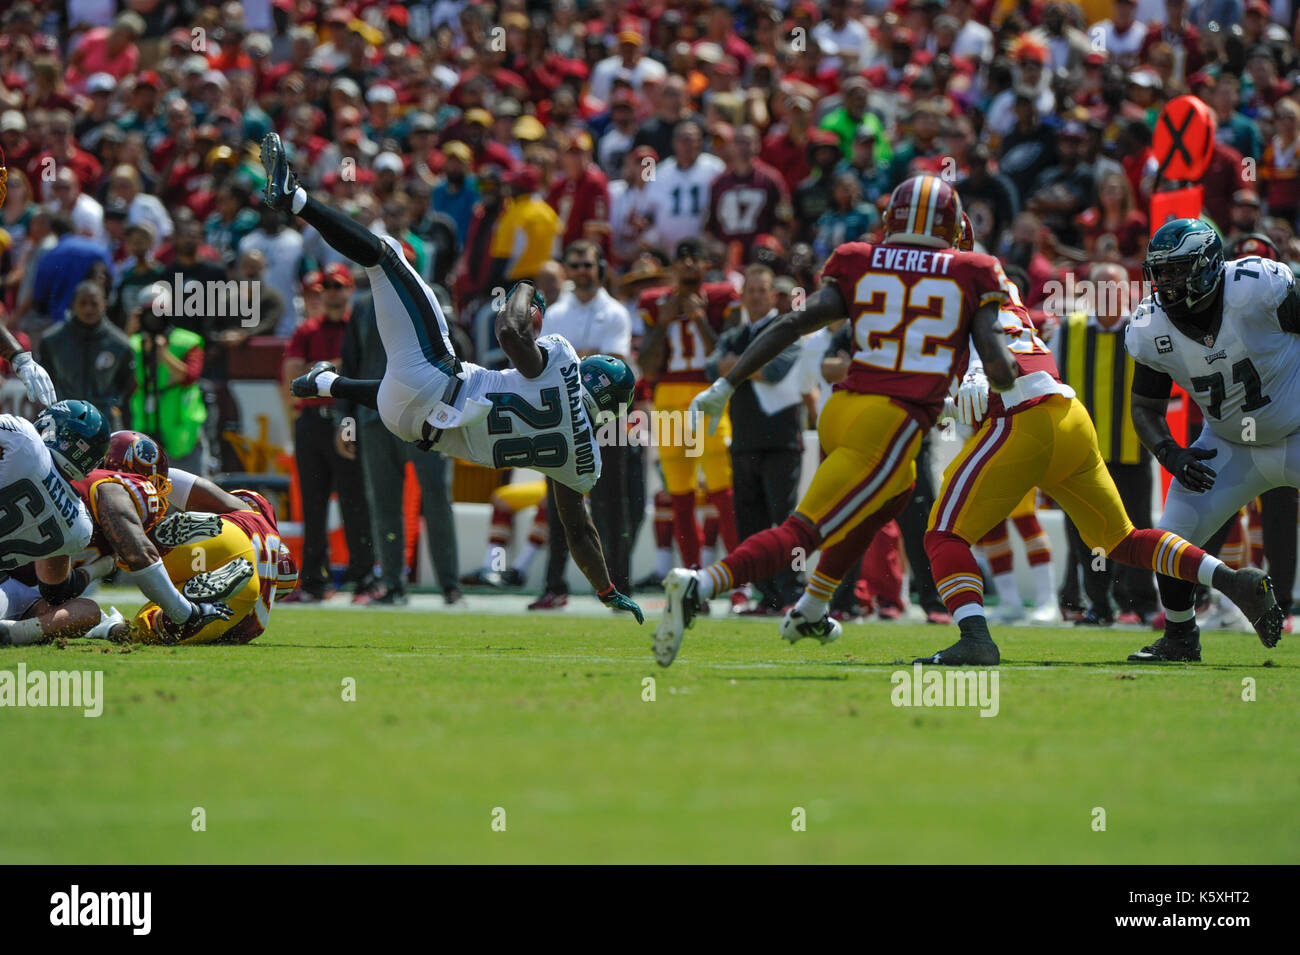 Landover, MD, USA. 10th Sep, 2017. Philadelphia Eagles running back Wendell Smallwood (28) gets up ended by the defenders during the season opening matchup between the Philadelphia Eagles and the Washington Redskins at FedEx Field in Landover, MD. Credit: csm/Alamy Live News - Stock Image